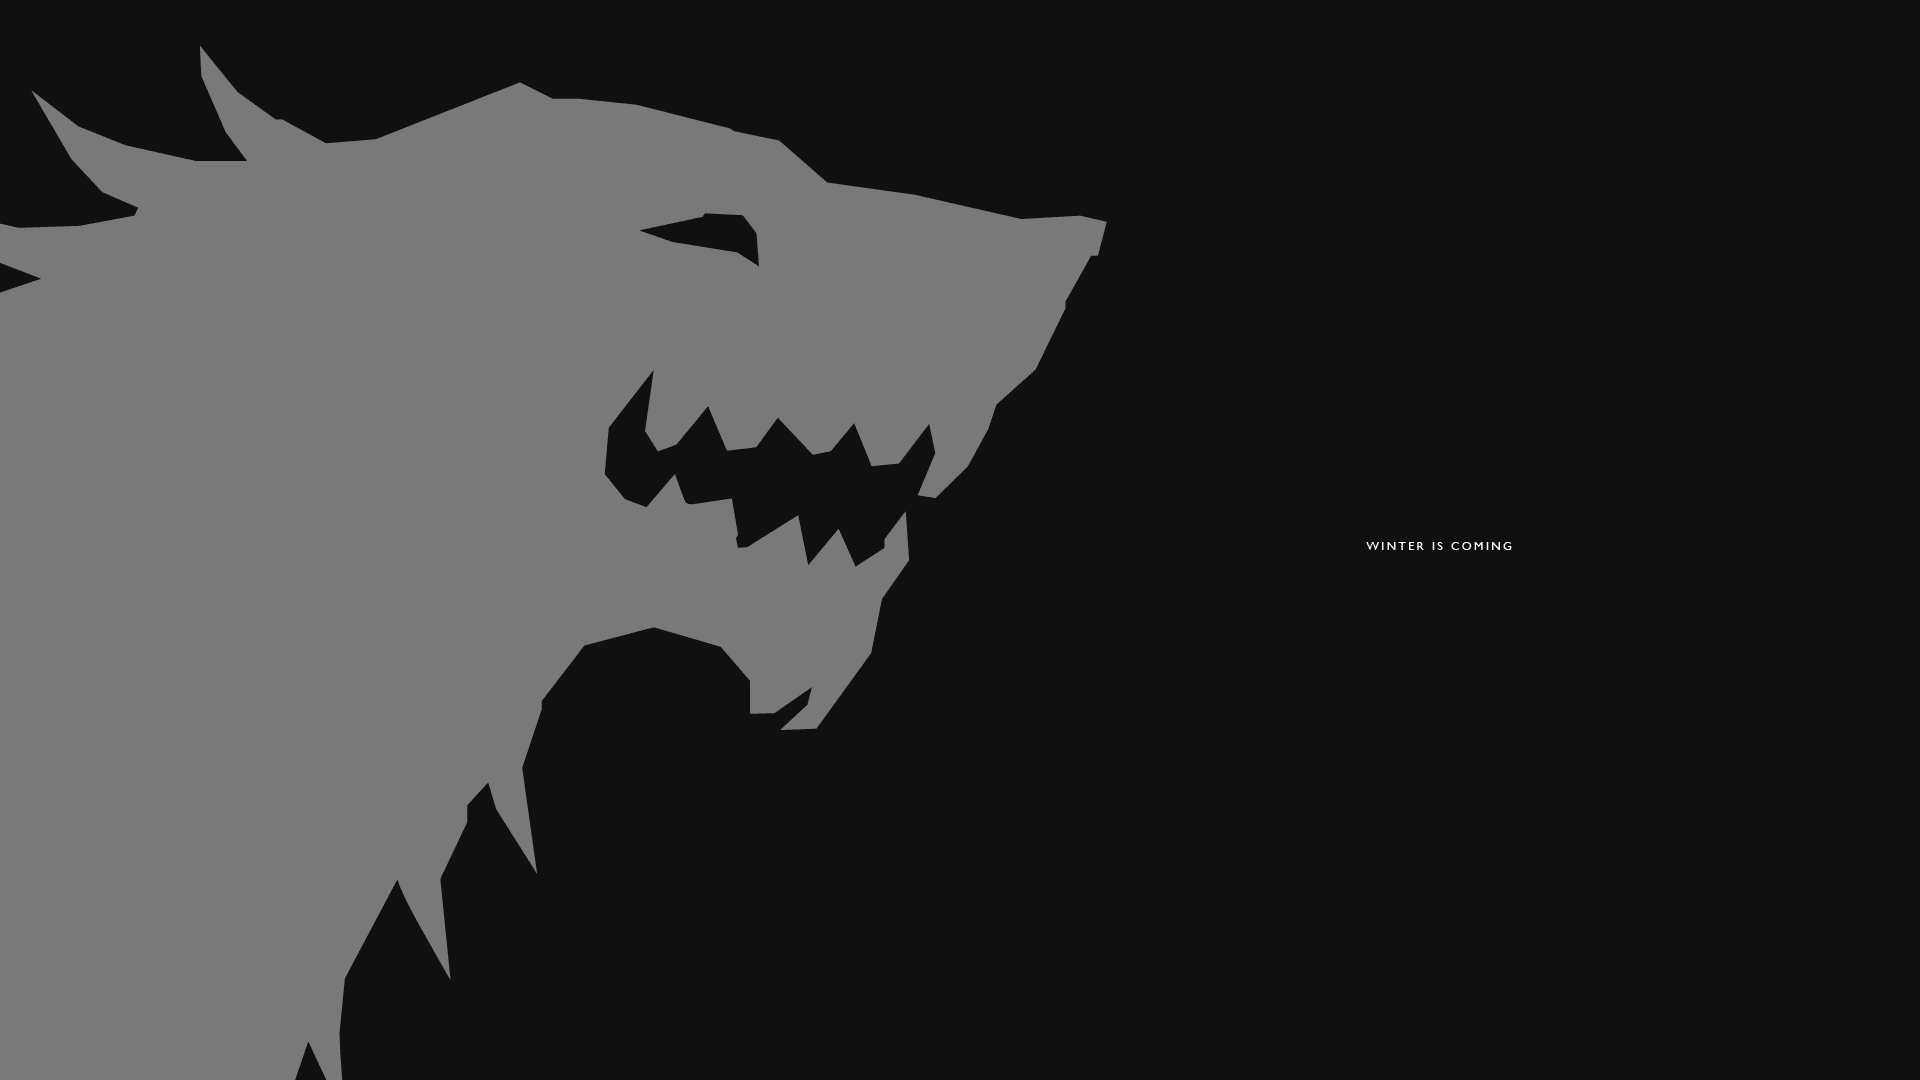 House Stark Sigil Winter Is Coming